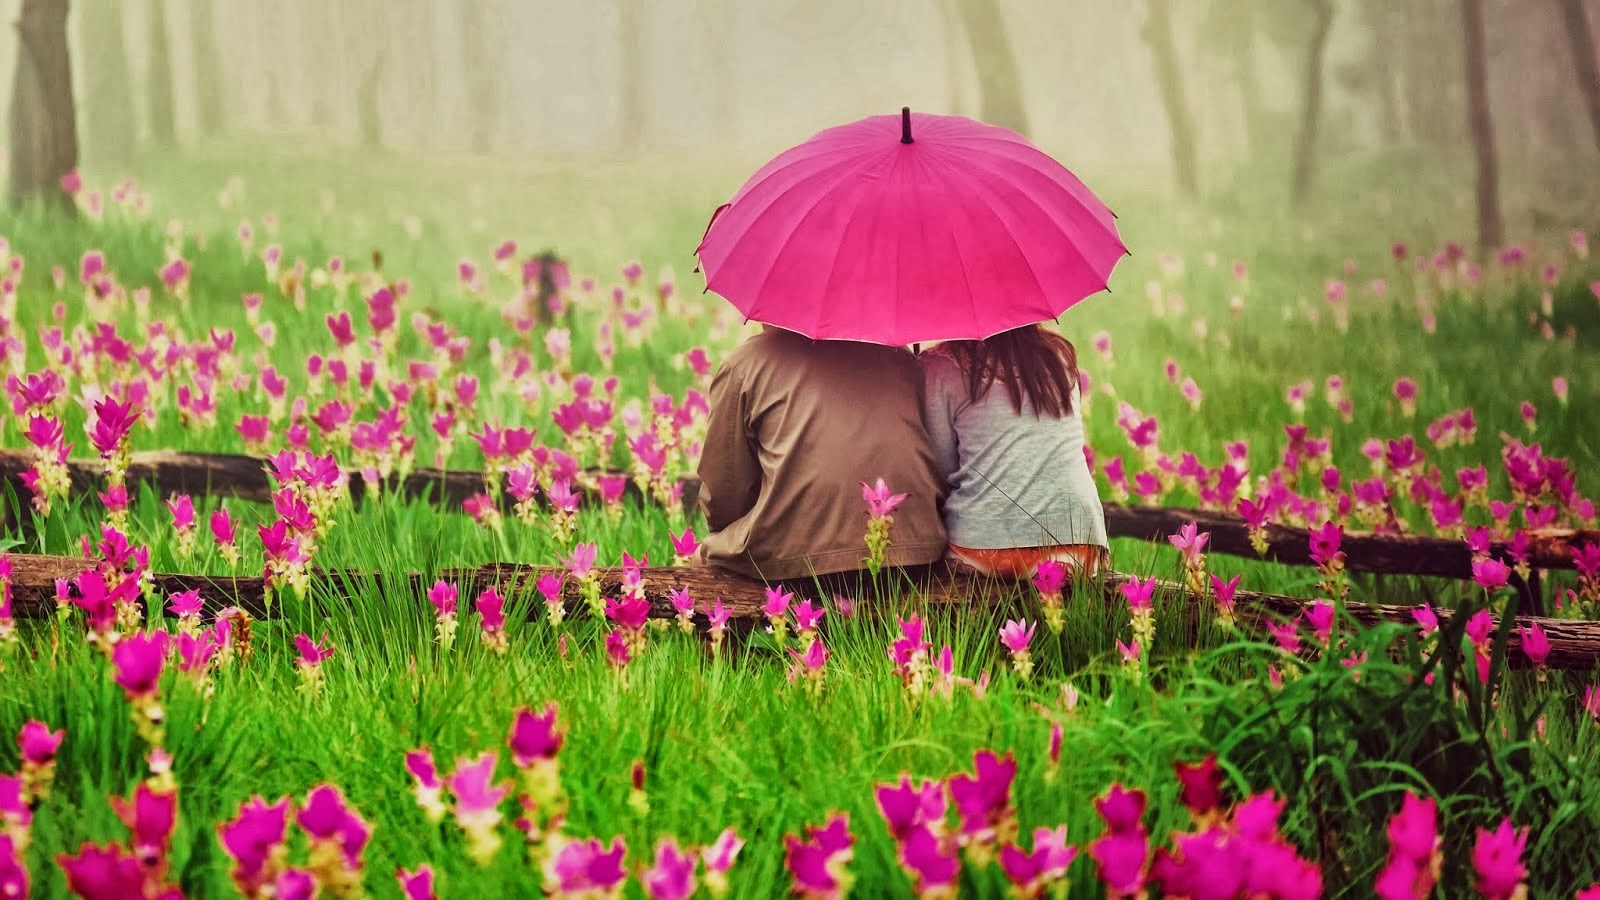 Love Romantic Full Hd Wallpaper : Romantic Love Hd Wallpapers 13 Free Wallpaper - Hdlovewall.com